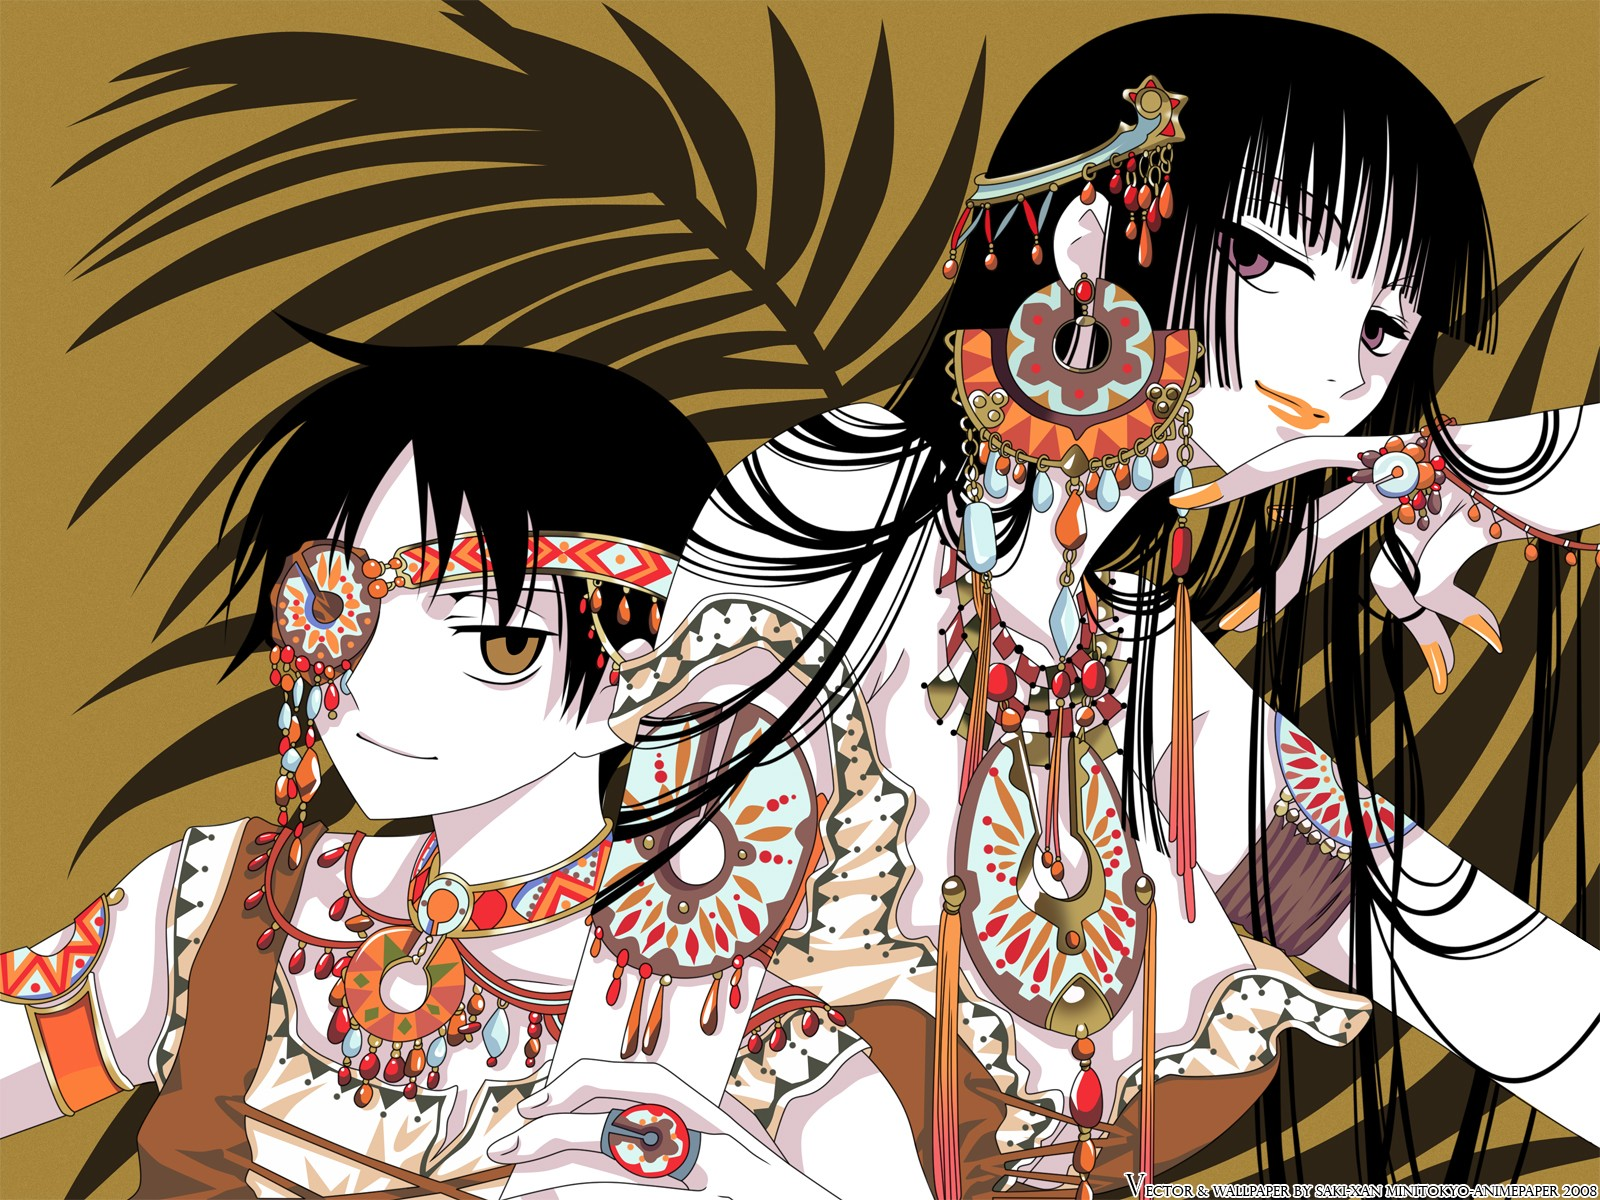 Xxxholic manga anime hd wallpaper 02 imagez only - Wallpaper manga anime ...